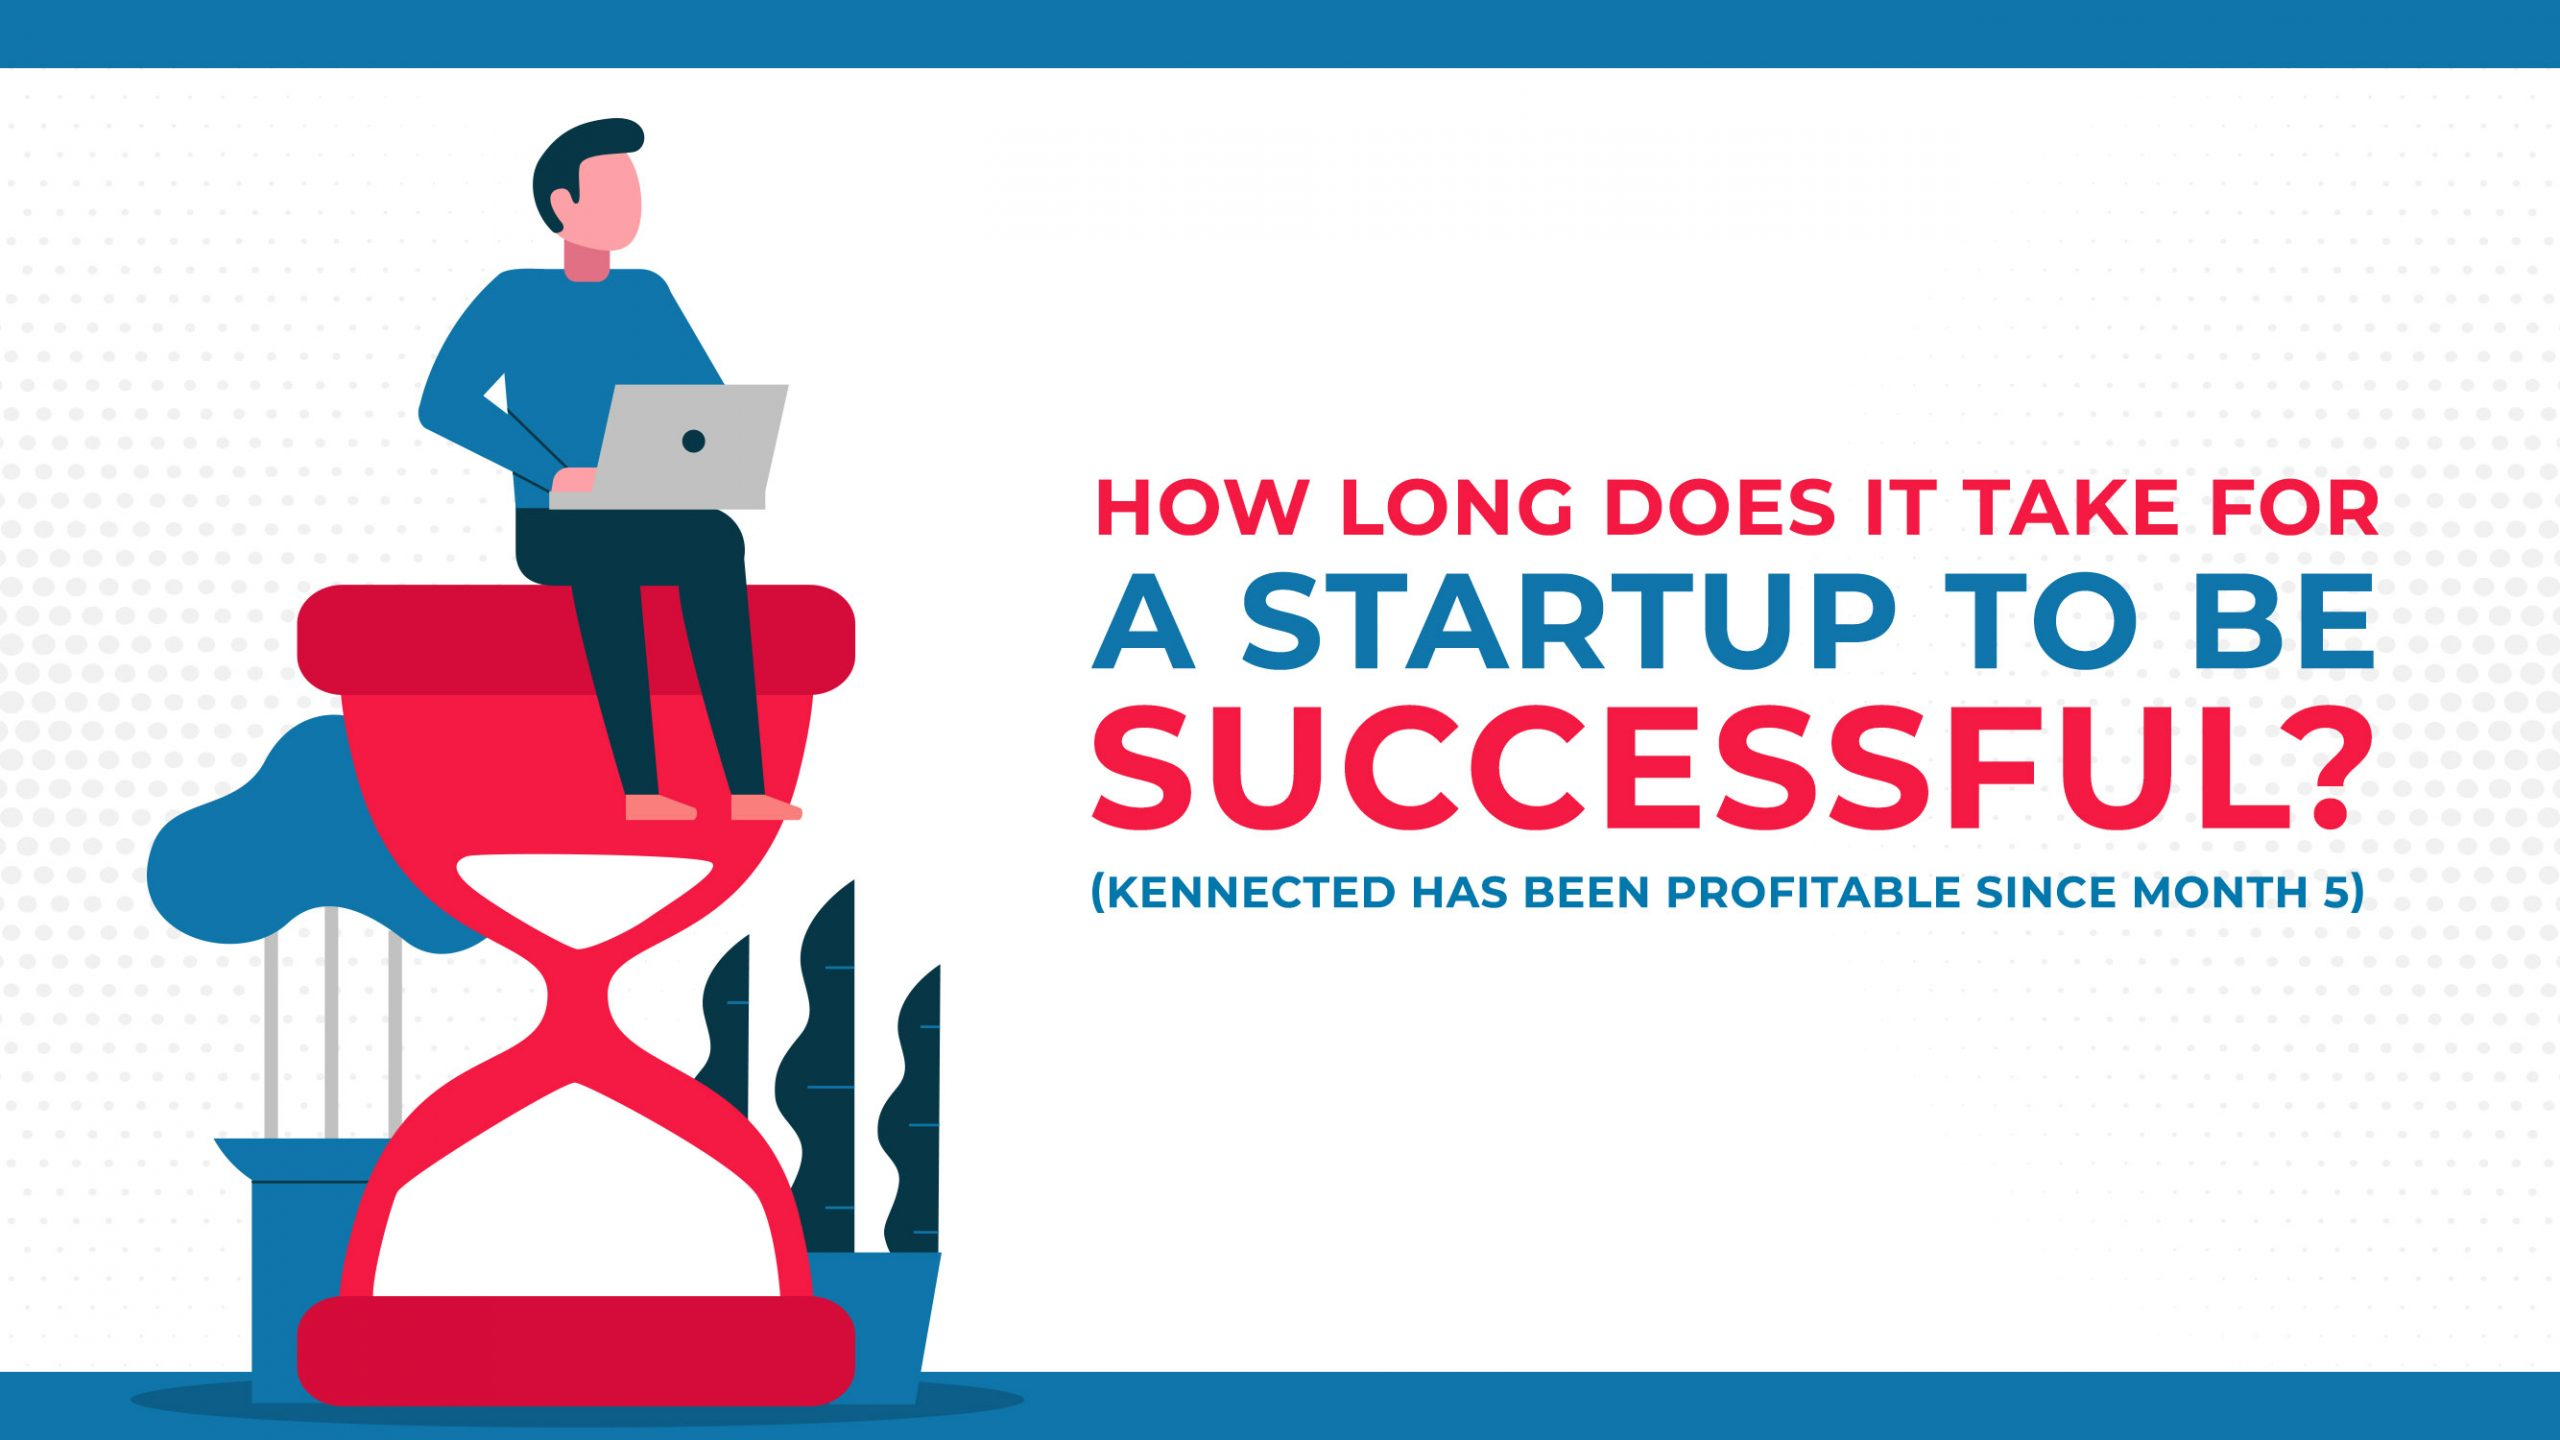 How Long Does It Take For A Startup To Be Successful?